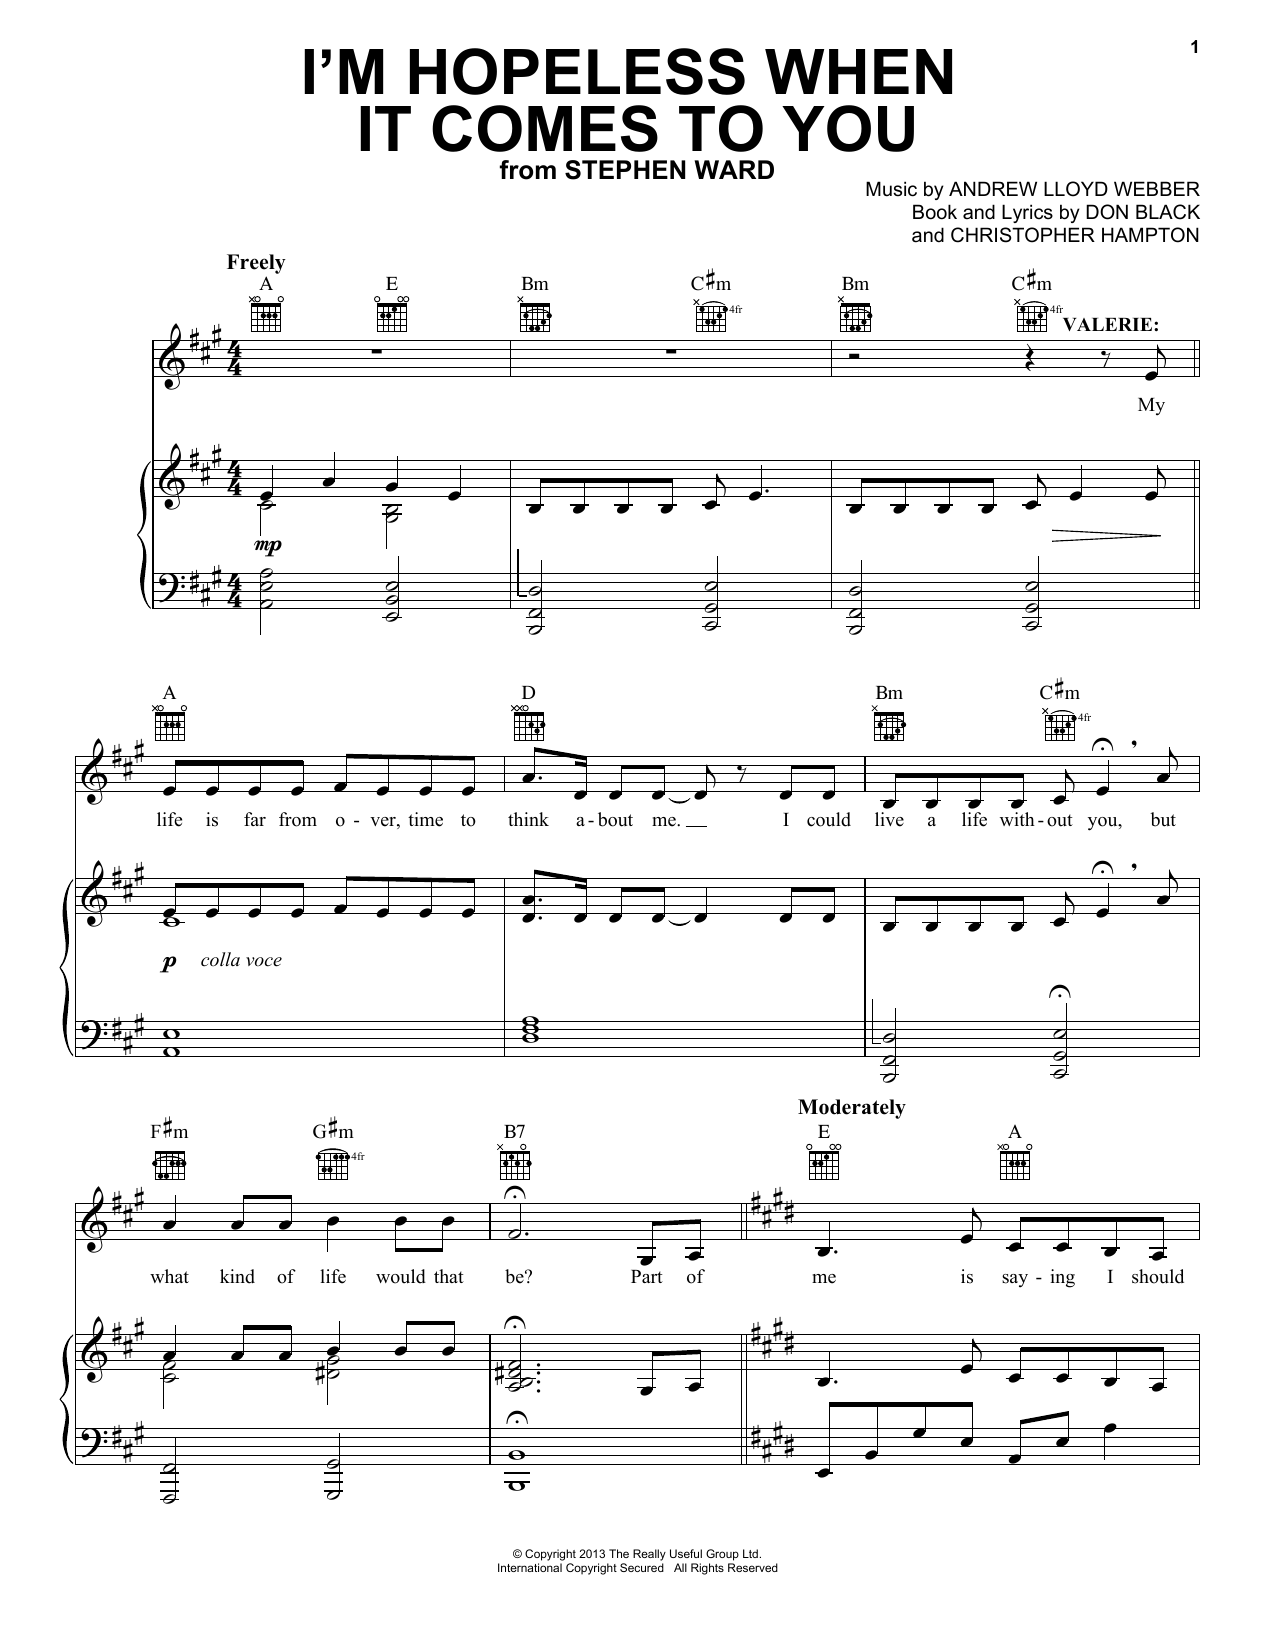 Download Andrew Lloyd Webber 'I'm Hopeless When It Comes To You (from Stephen Ward)' Digital Sheet Music Notes & Chords and start playing in minutes